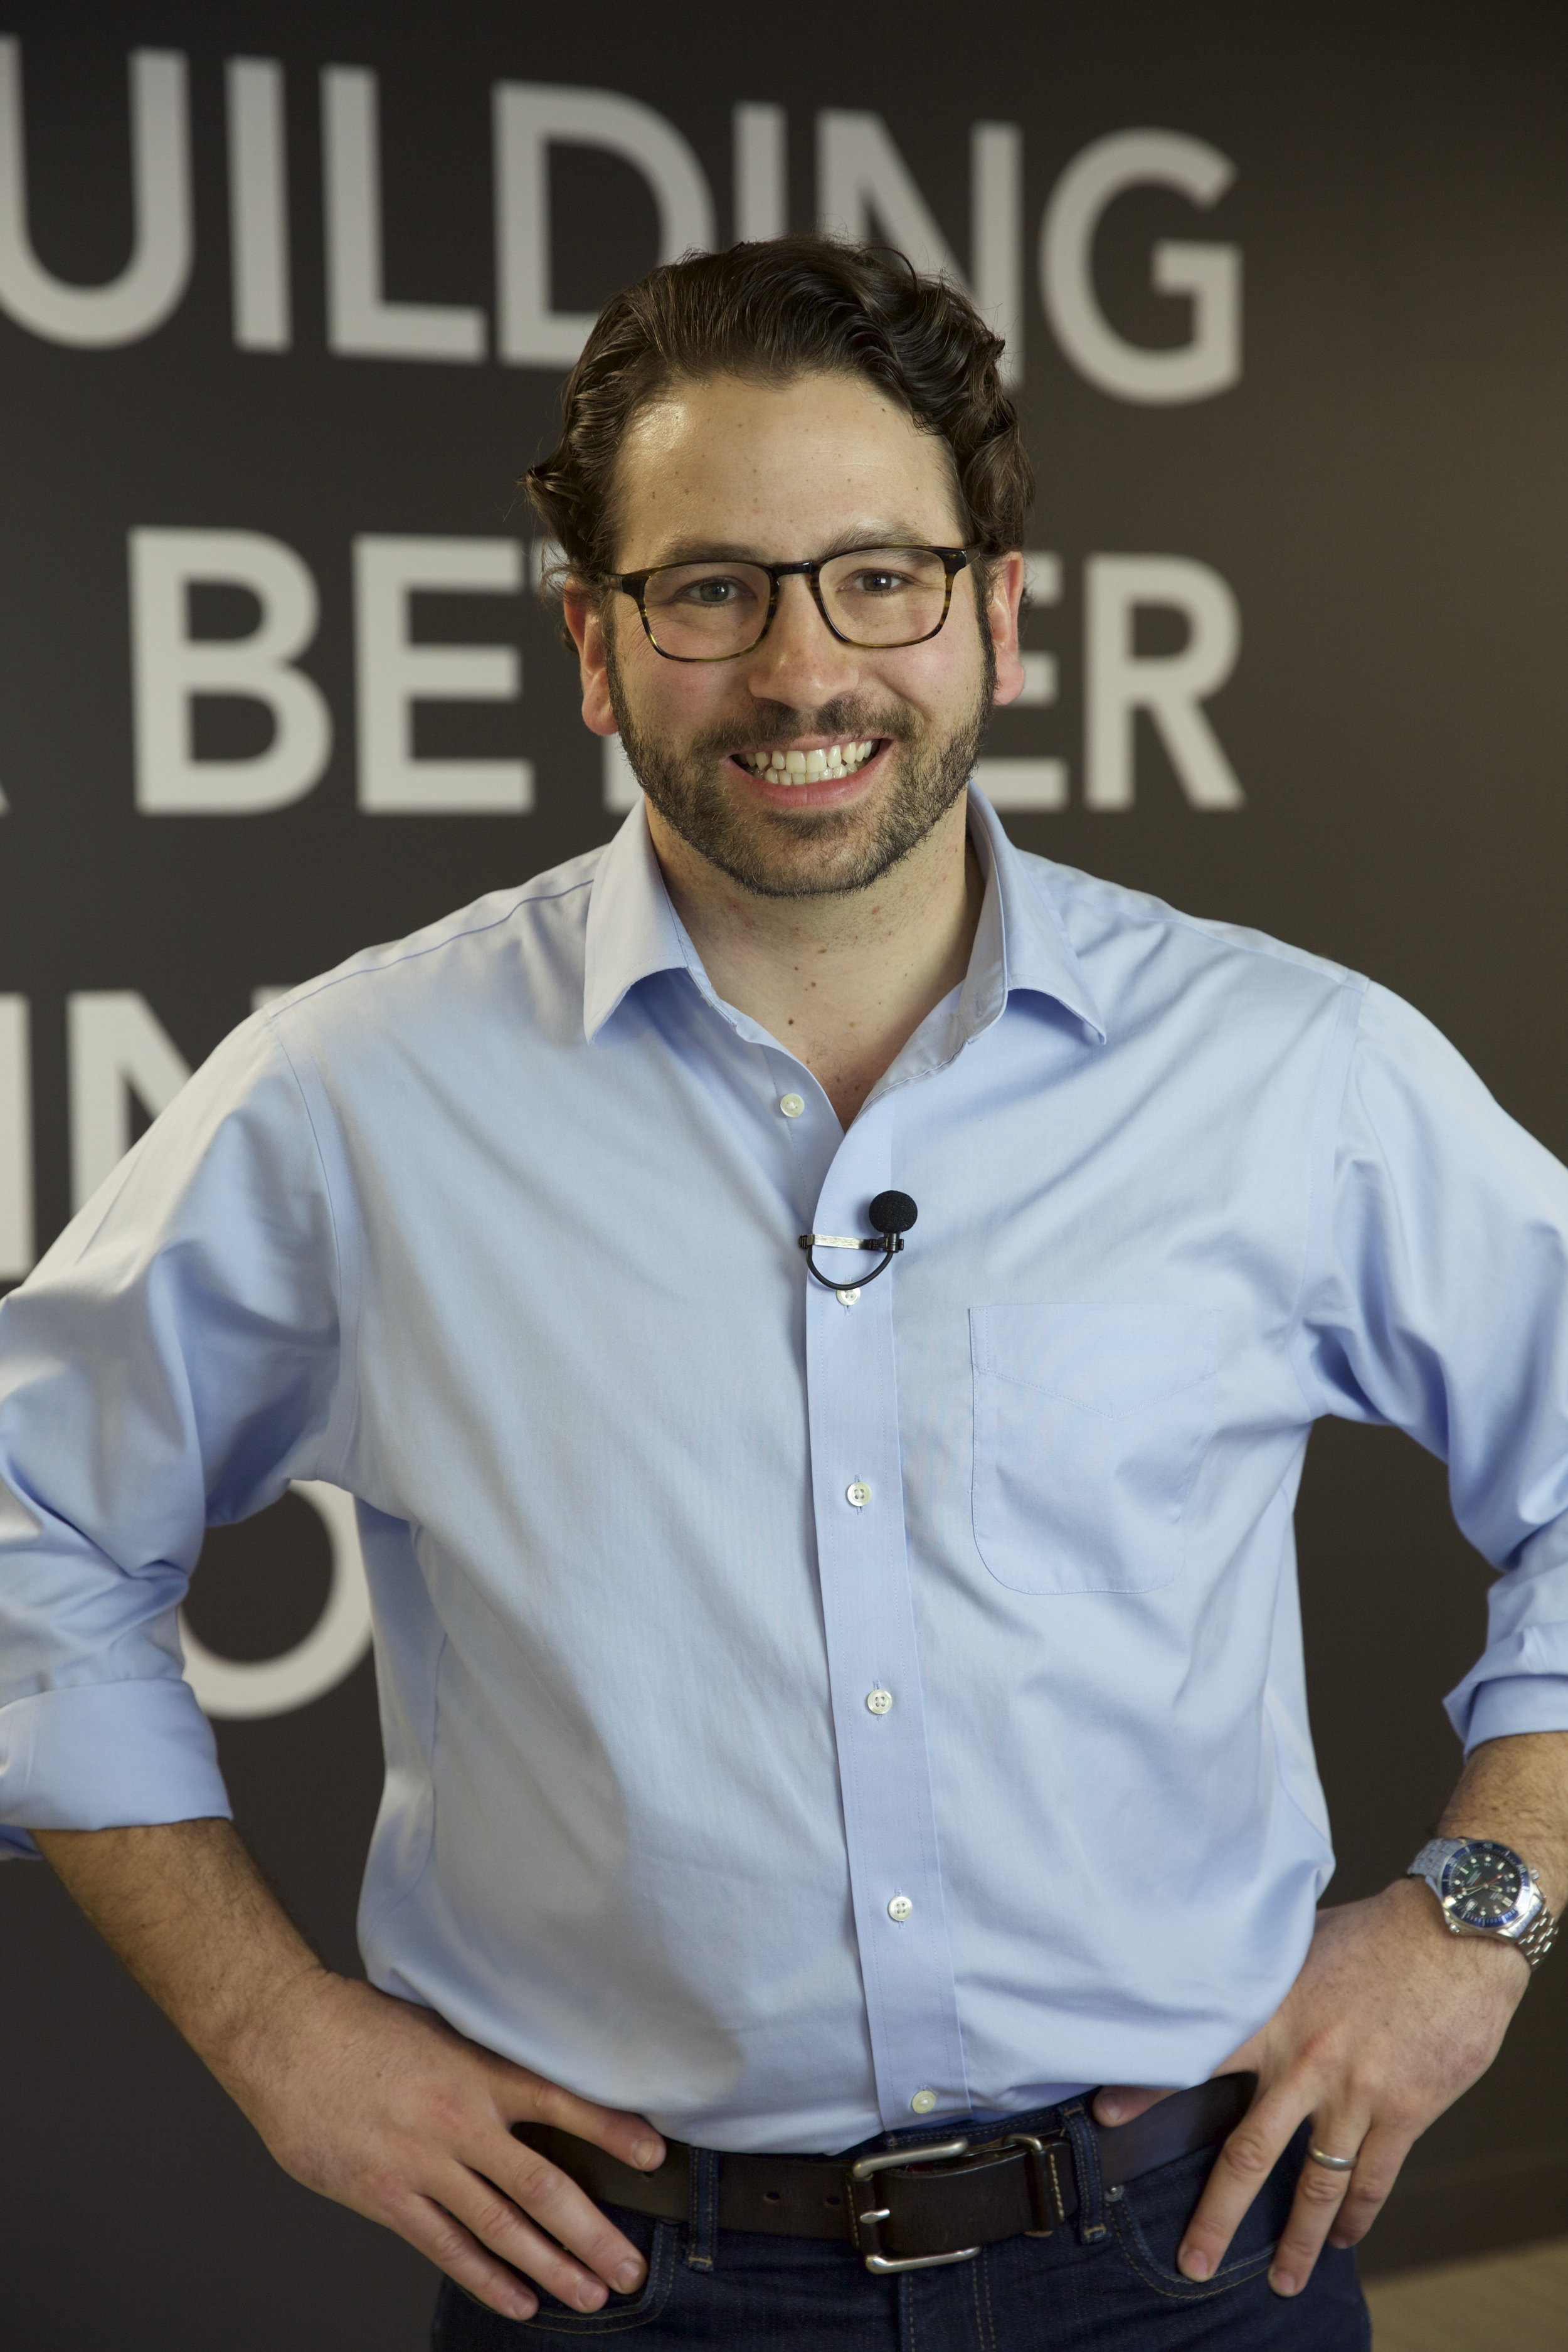 Sam Hodges, CEO of Funding Circle